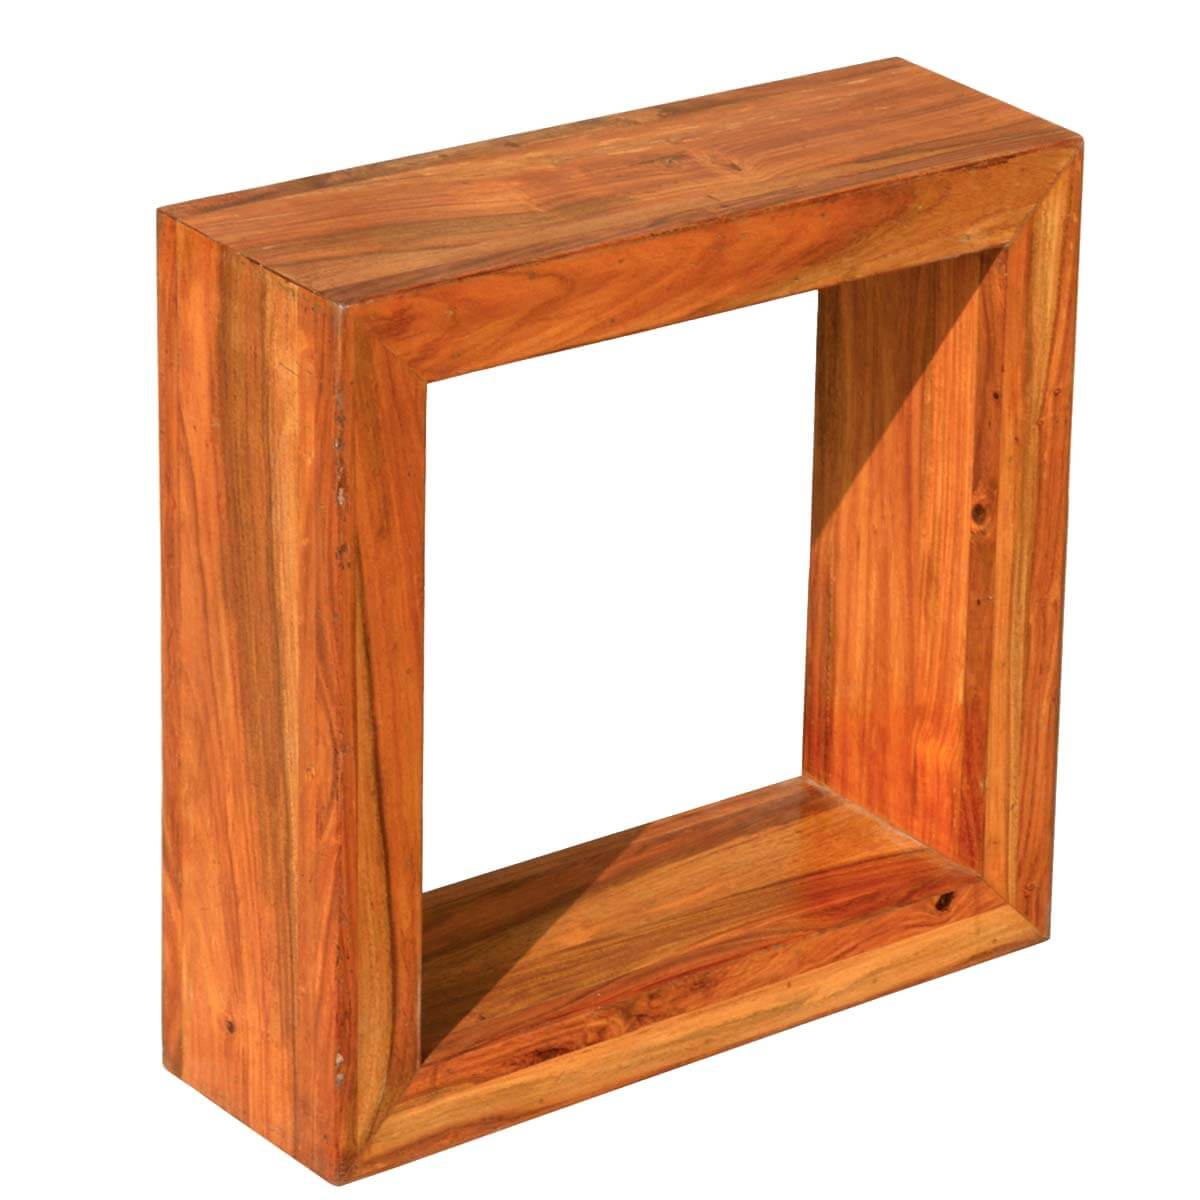 18 solid wood open back display small side table for Small wooden side table